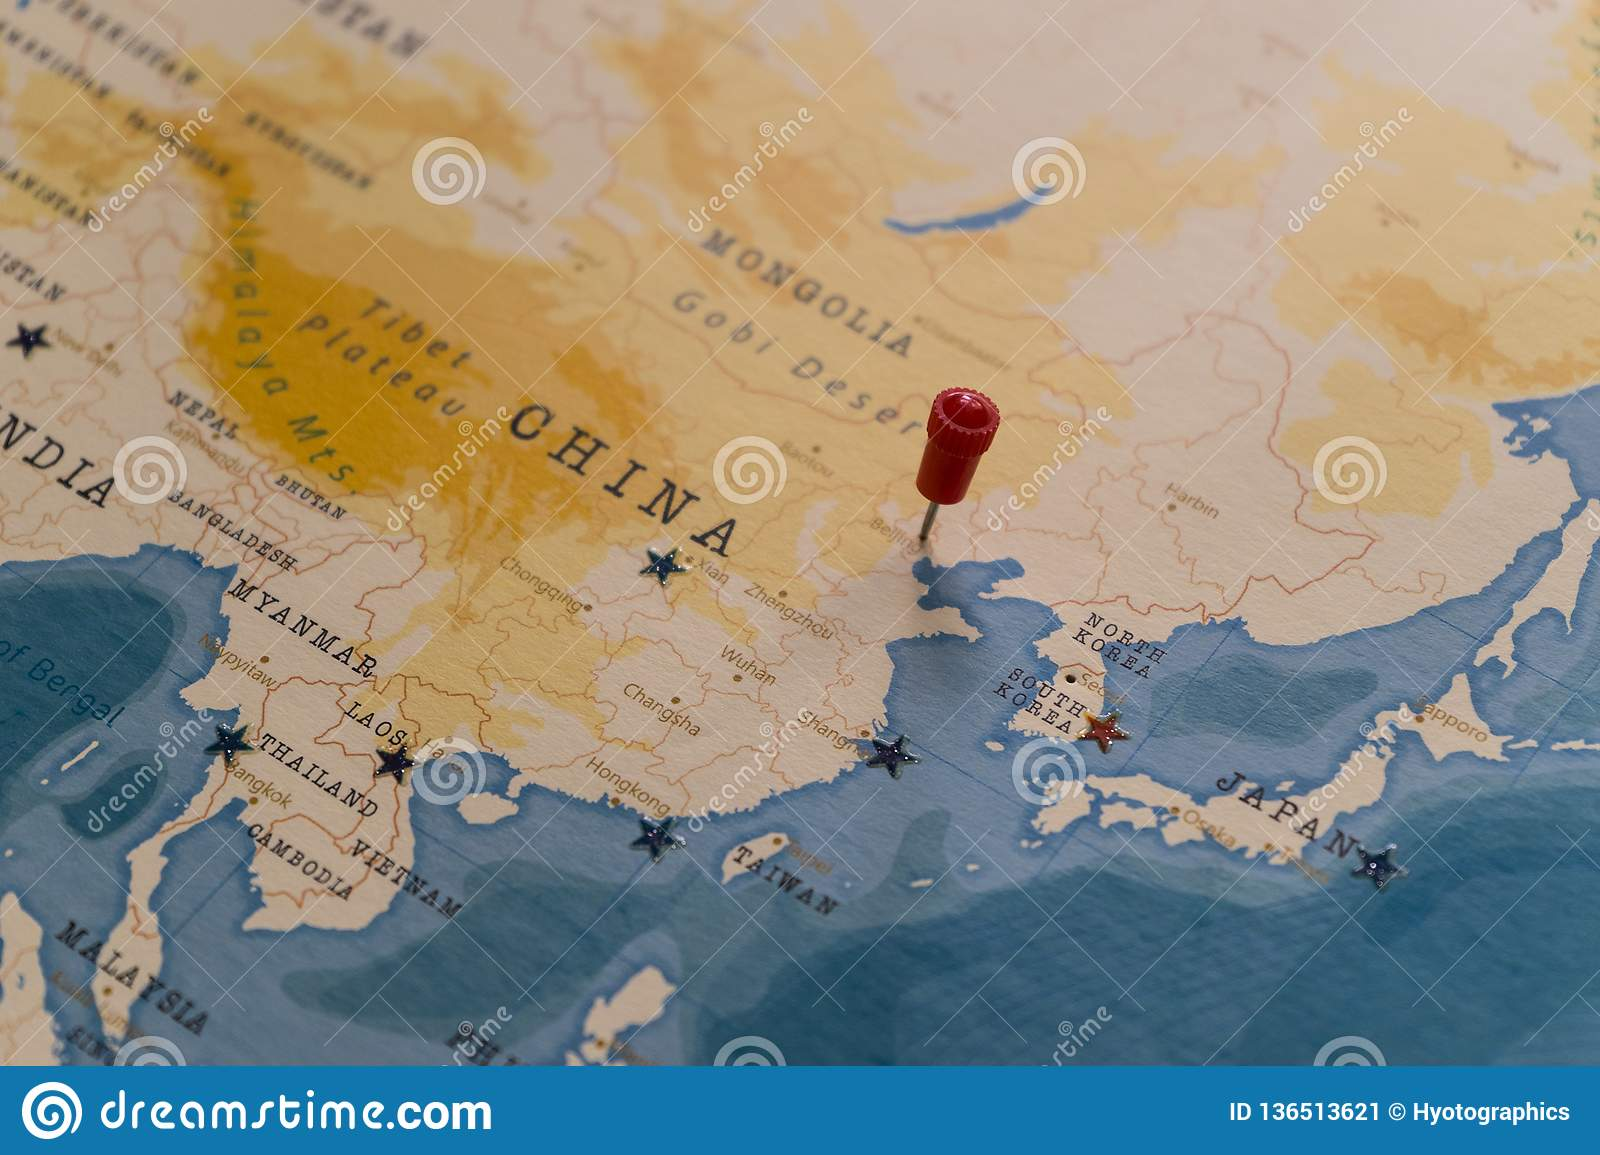 Picture of: A Pin On Beijing China In The World Map Stock Image Image Of Government Geography 136513621